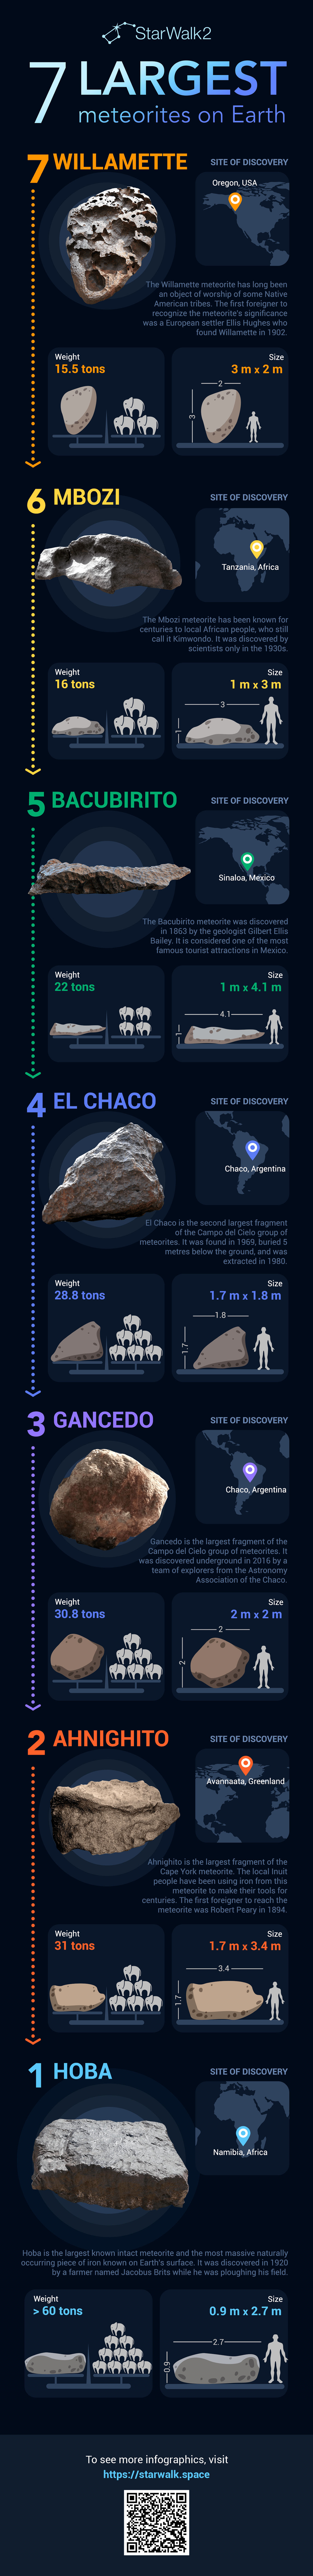 7 Largest Meteorites on Earth